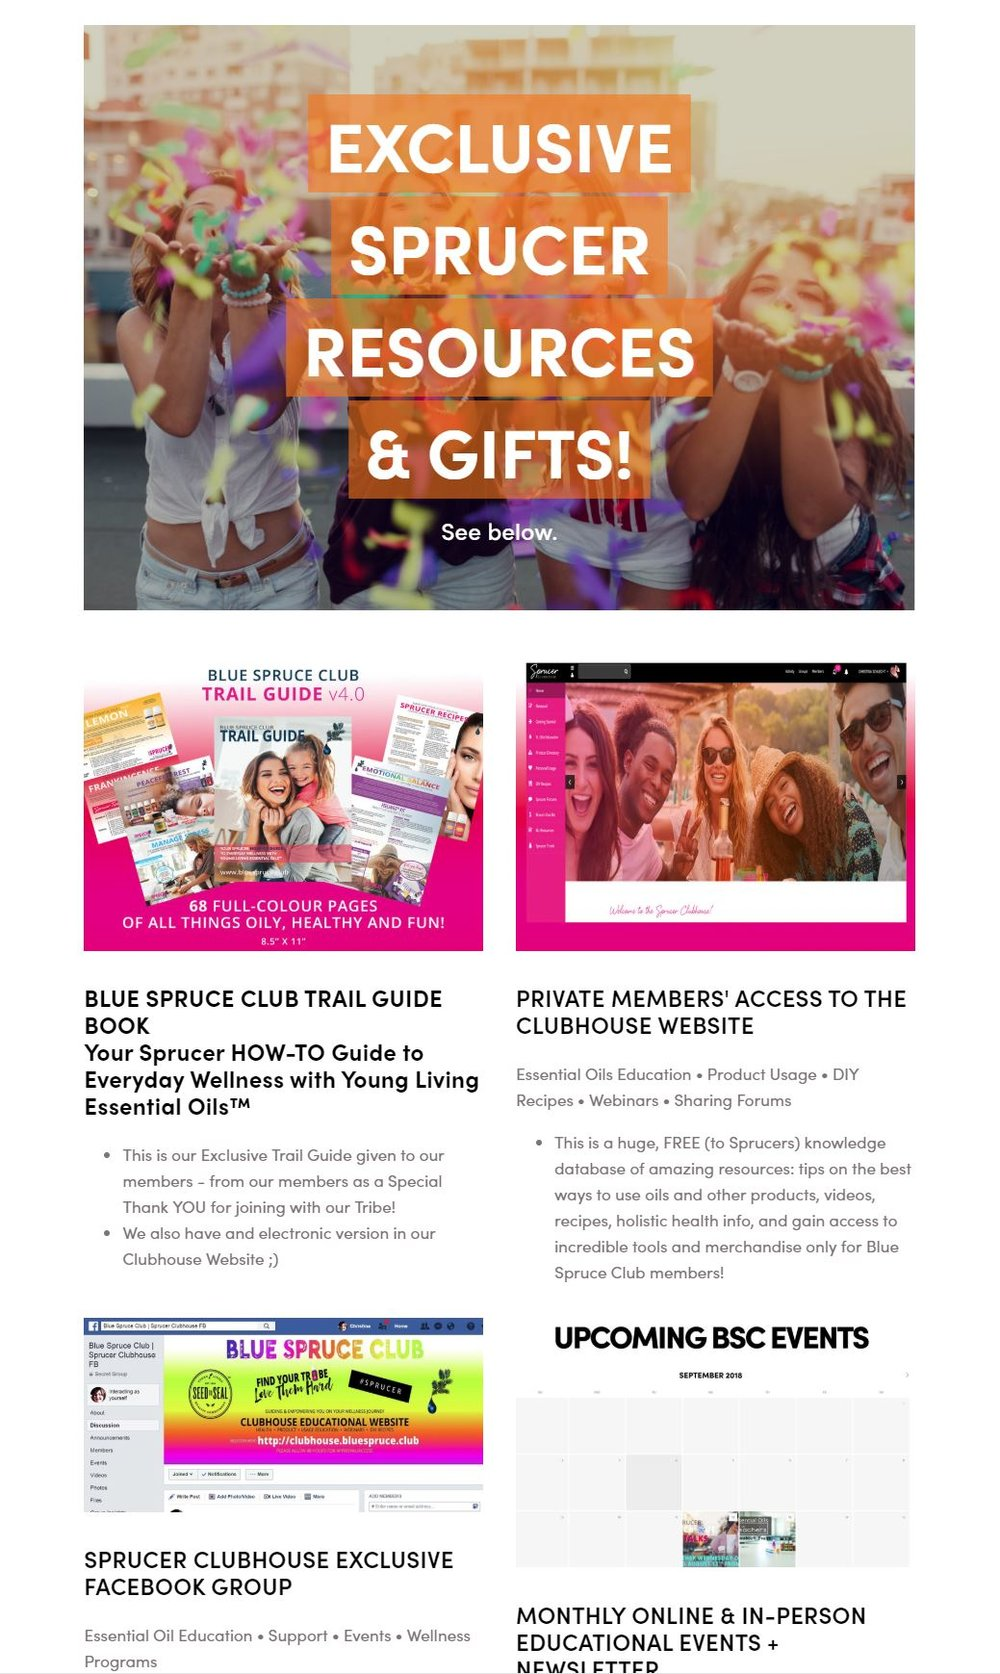 CHECK OUT ALL THE SPRUCER RESOURCES & GIFTS! -